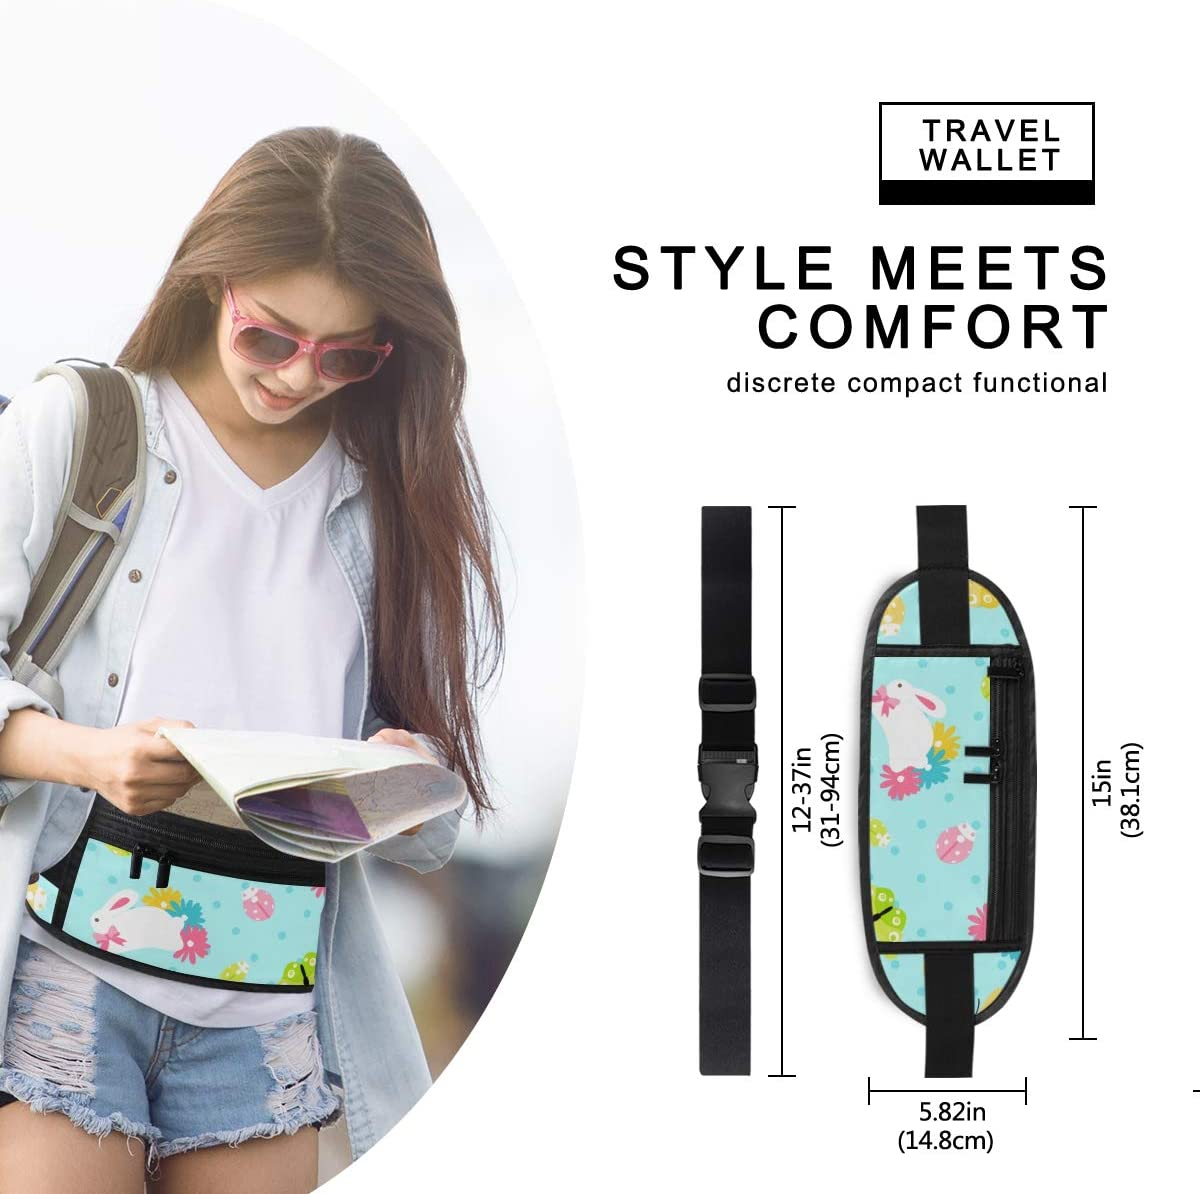 Travel Waist Pack,travel Pocket With Adjustable Belt Easter Spring Bunny Flowers Running Lumbar Pack For Travel Outdoor Sports Walking